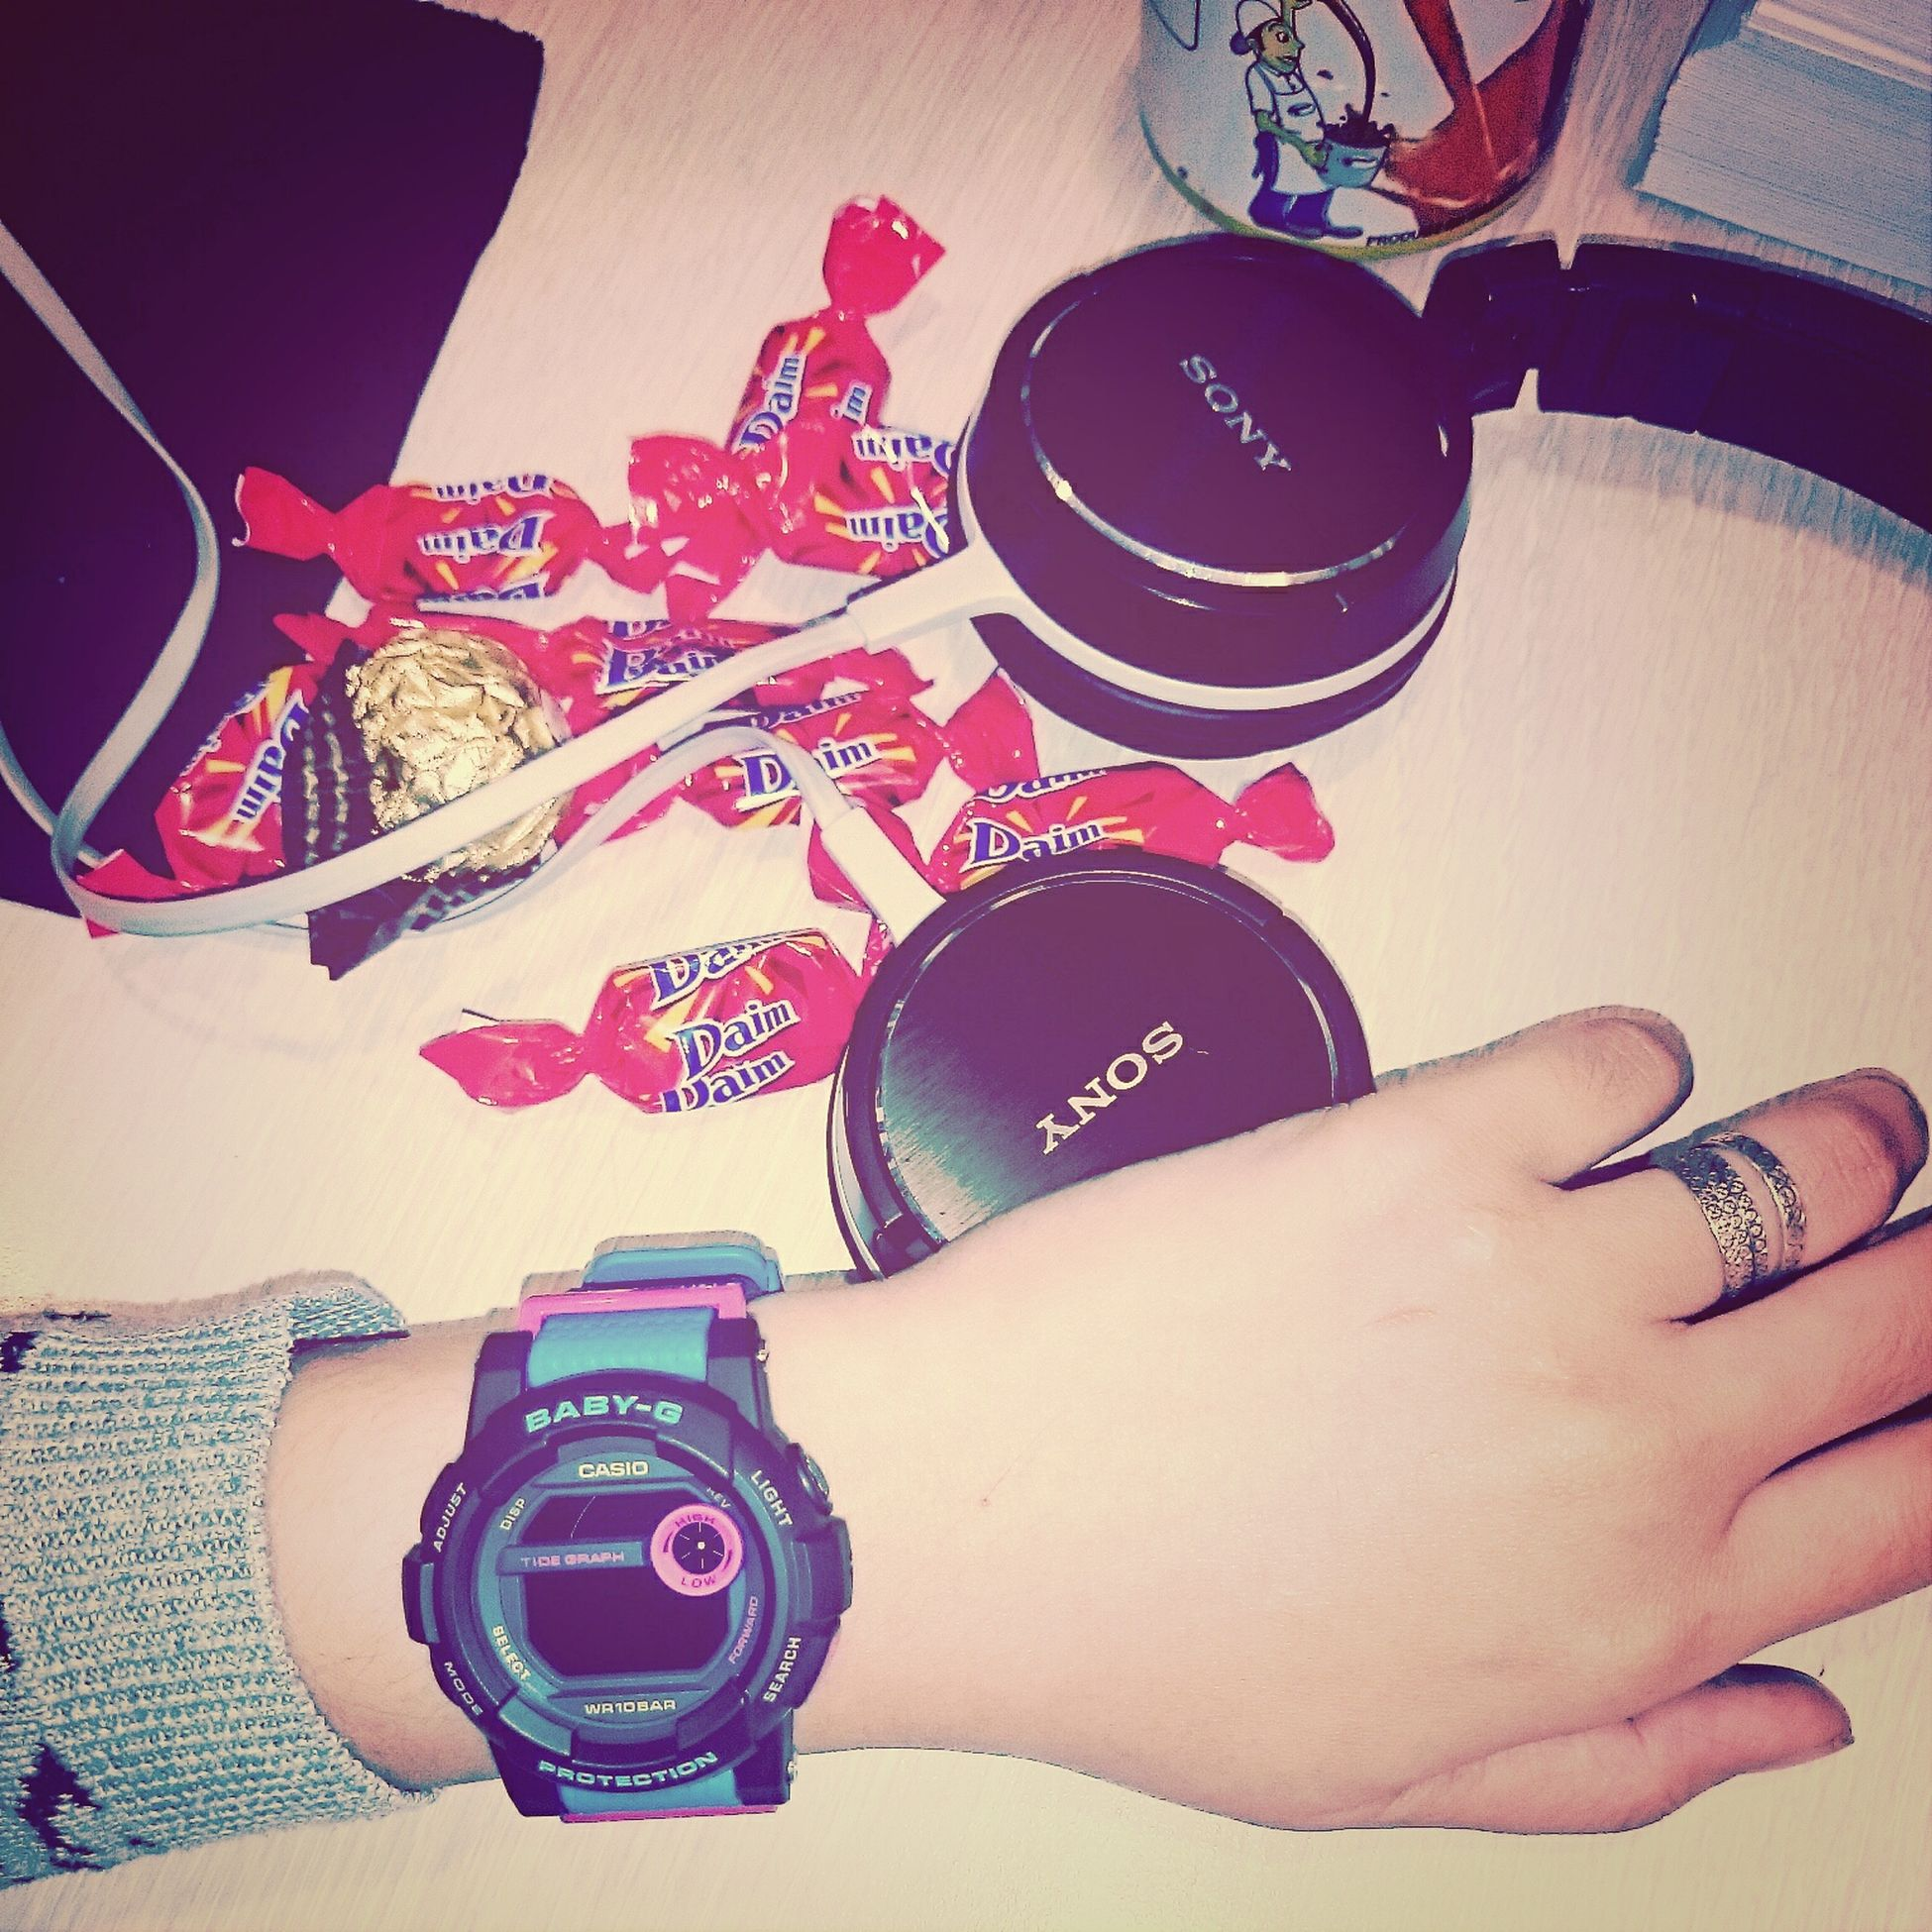 Ilovemywatch Chocolate♡ Quality Time Enjoying Life wit music its perfect for me.☺